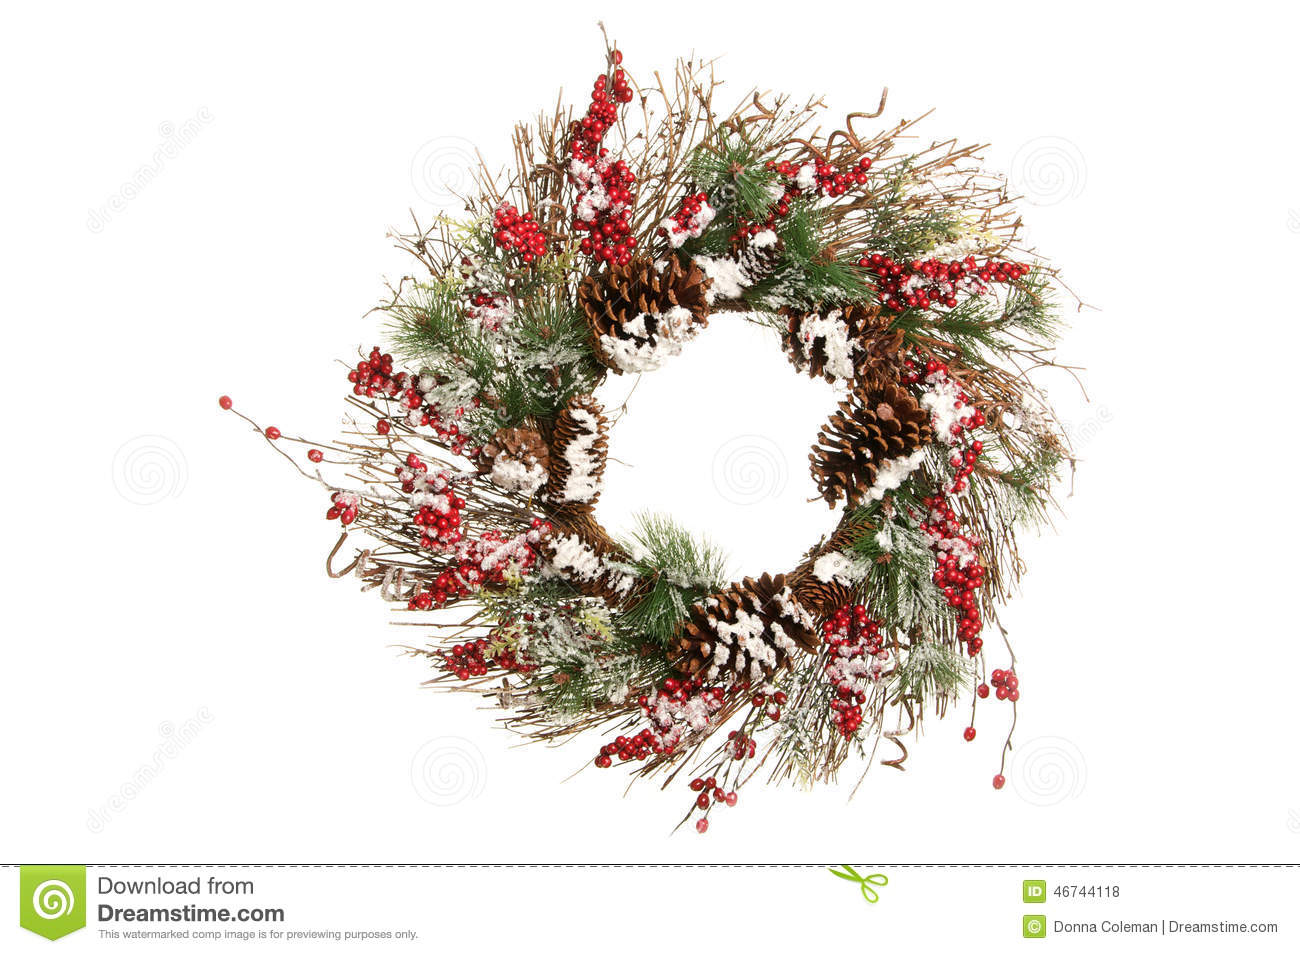 Decorative Christmas Wreath with Branches, Greens and Holly Berries